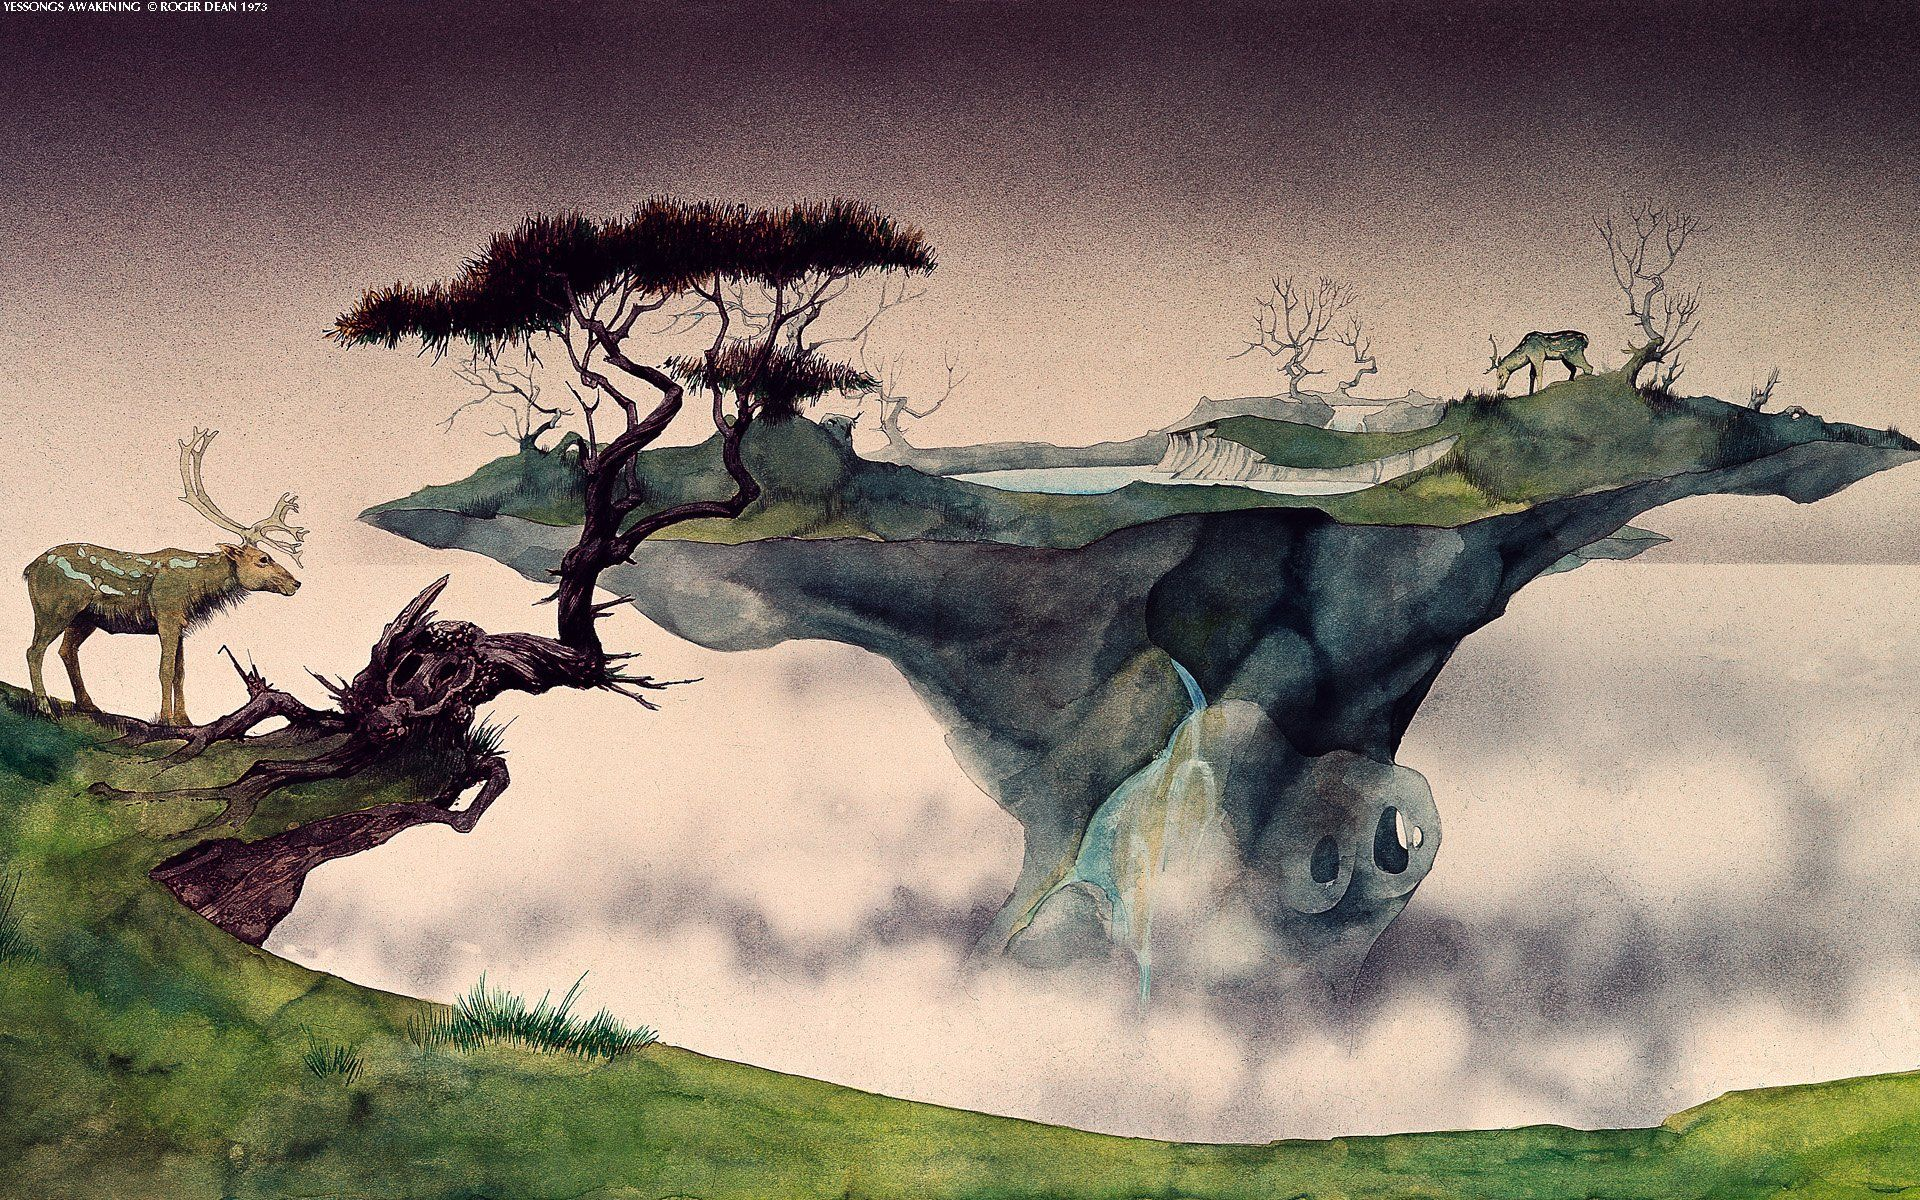 A Pack Of Amazing Surreal Wallpapers Roger Dean Dean Album Art